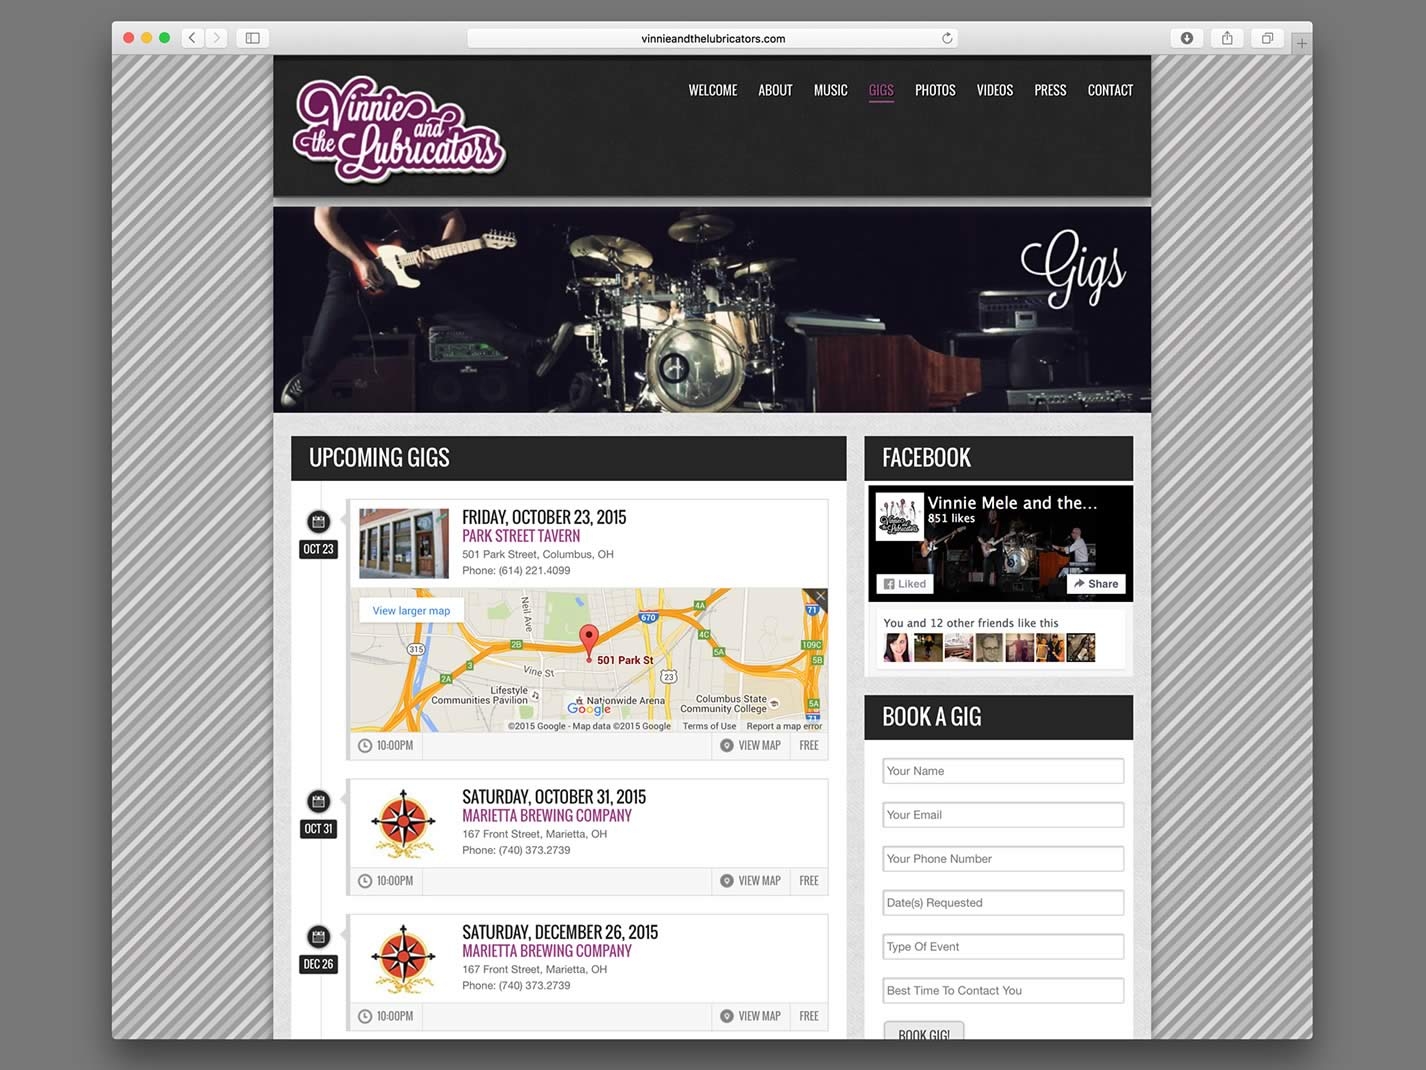 Vinnie and the Lubricators Website